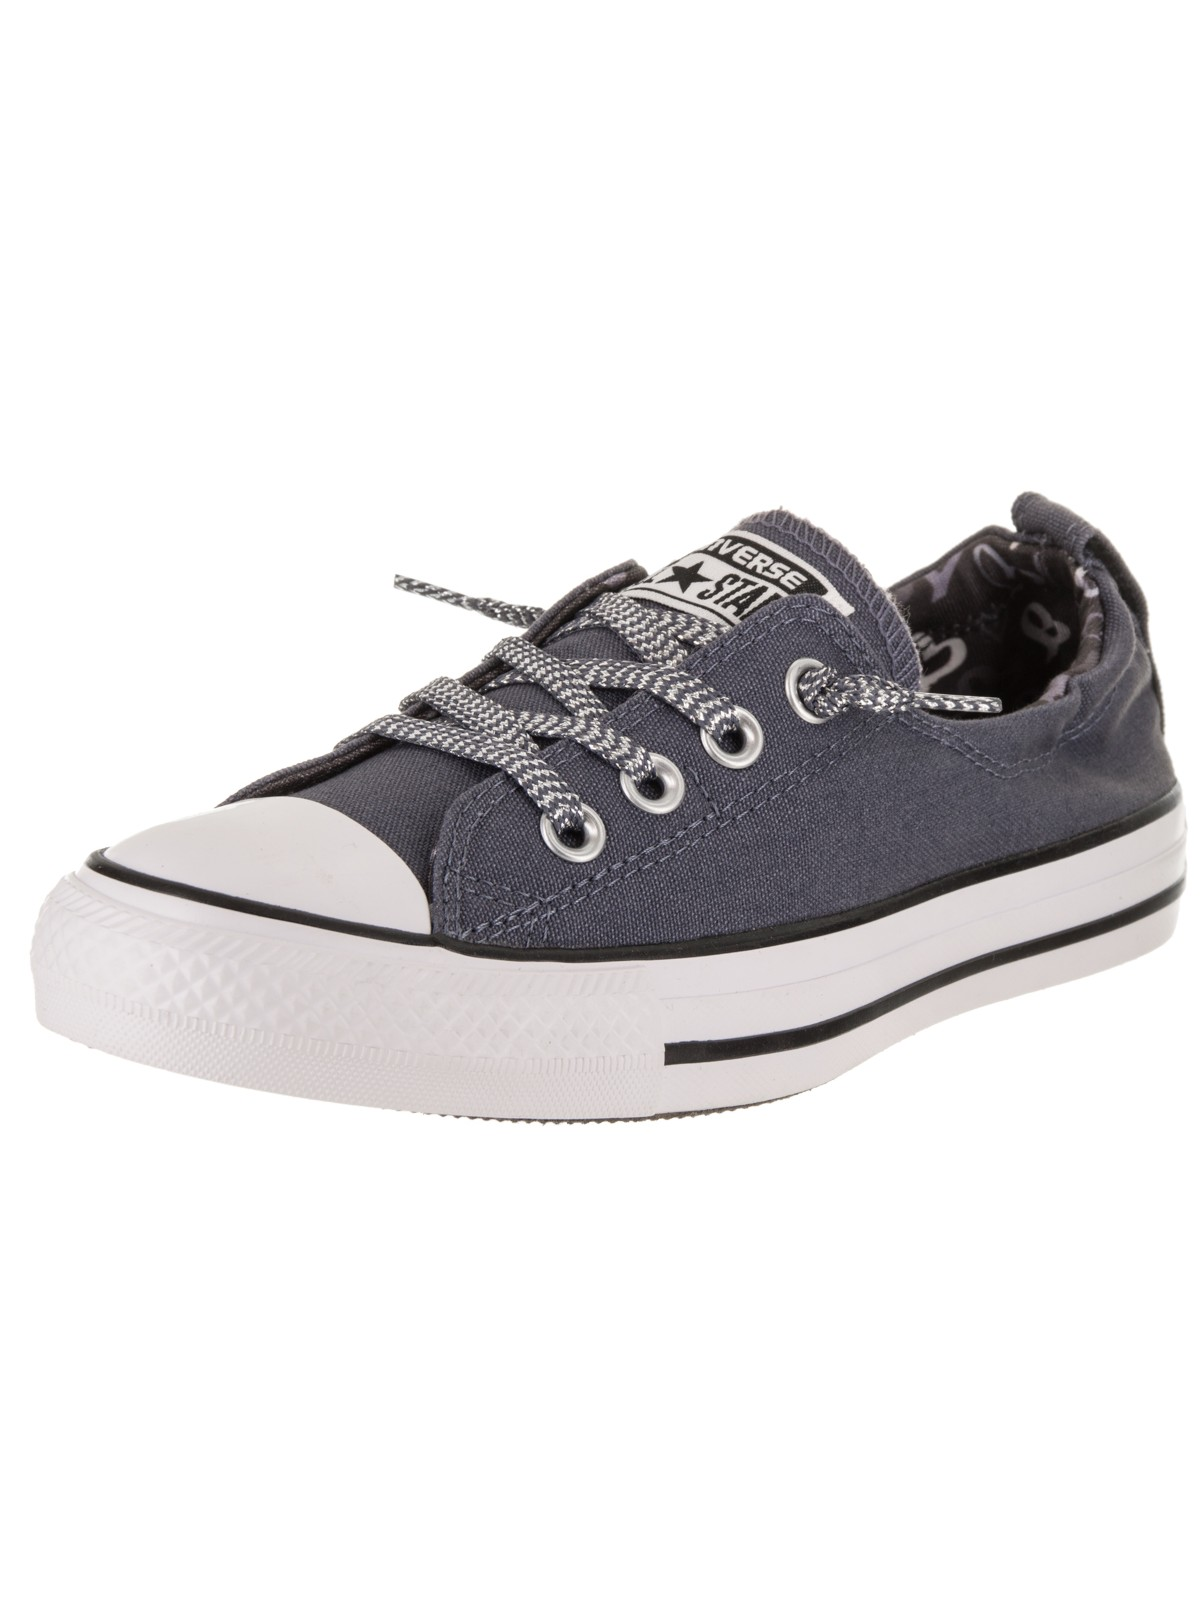 c1bcc759e897 Converse Women s Chuck Taylor All Star Shoreline Slip-On Casual ...